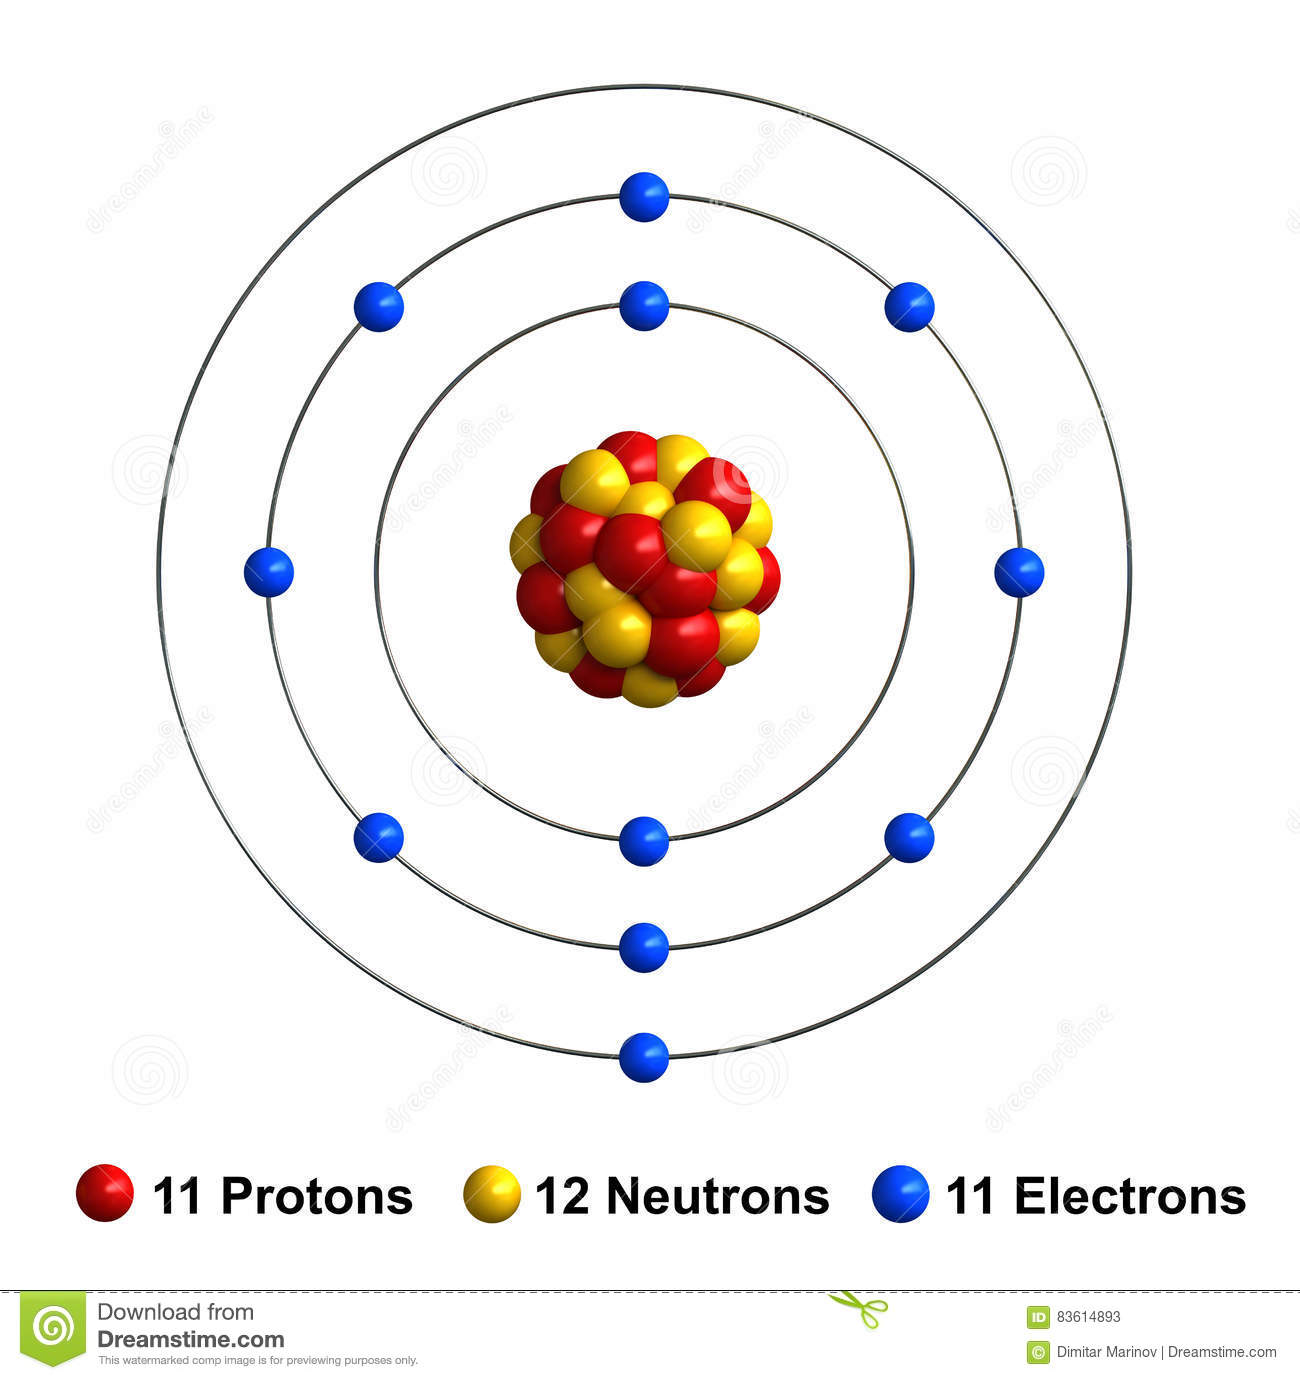 hight resolution of sodium stock illustration illustration of rendering 83614893 sodium protons sodium neutron diagram